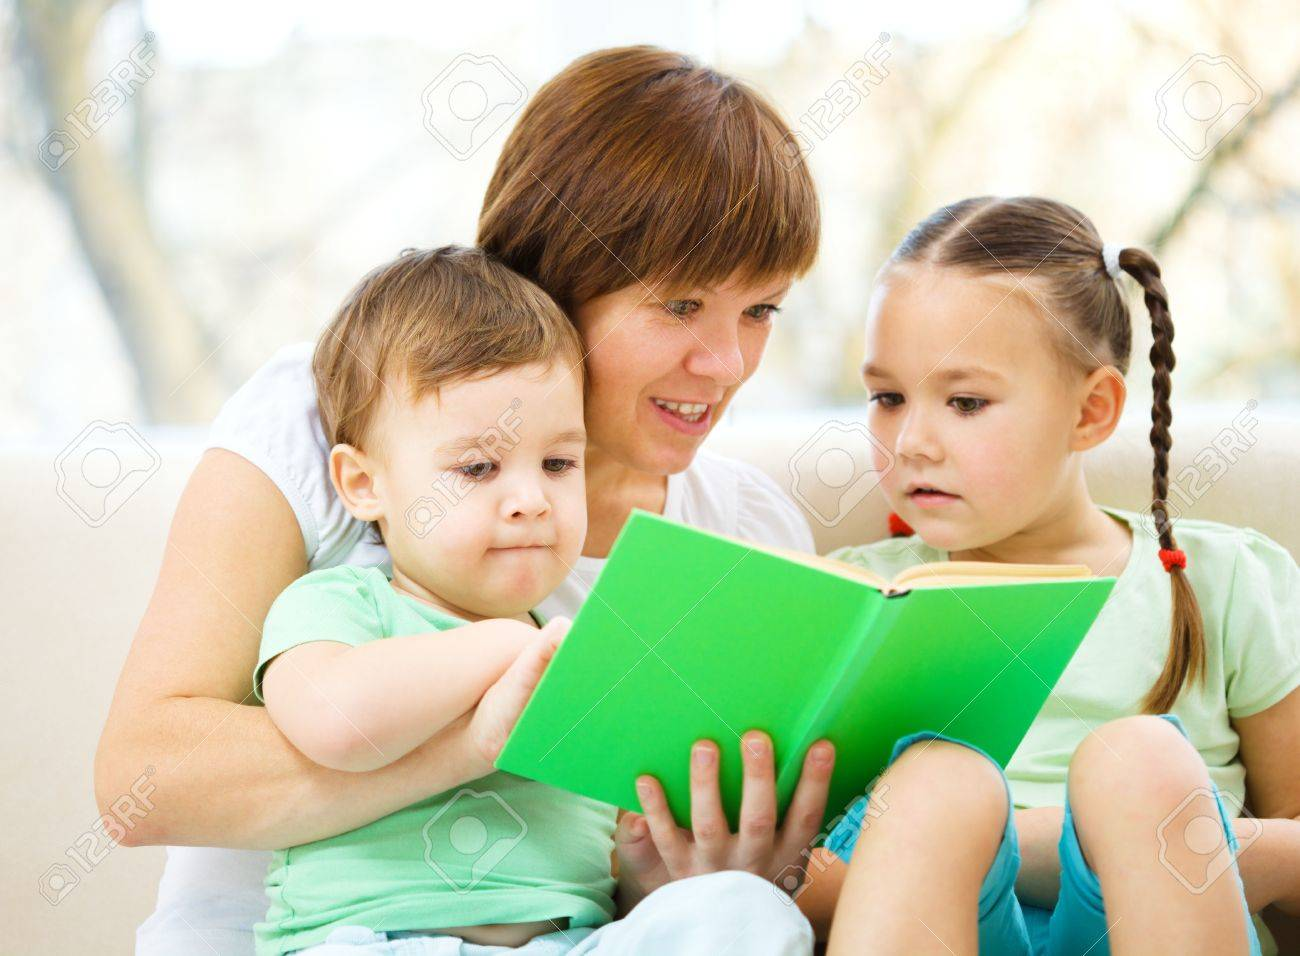 Family is reading book while sitting on a couch, indoor shoot Stock Photo - 16792284